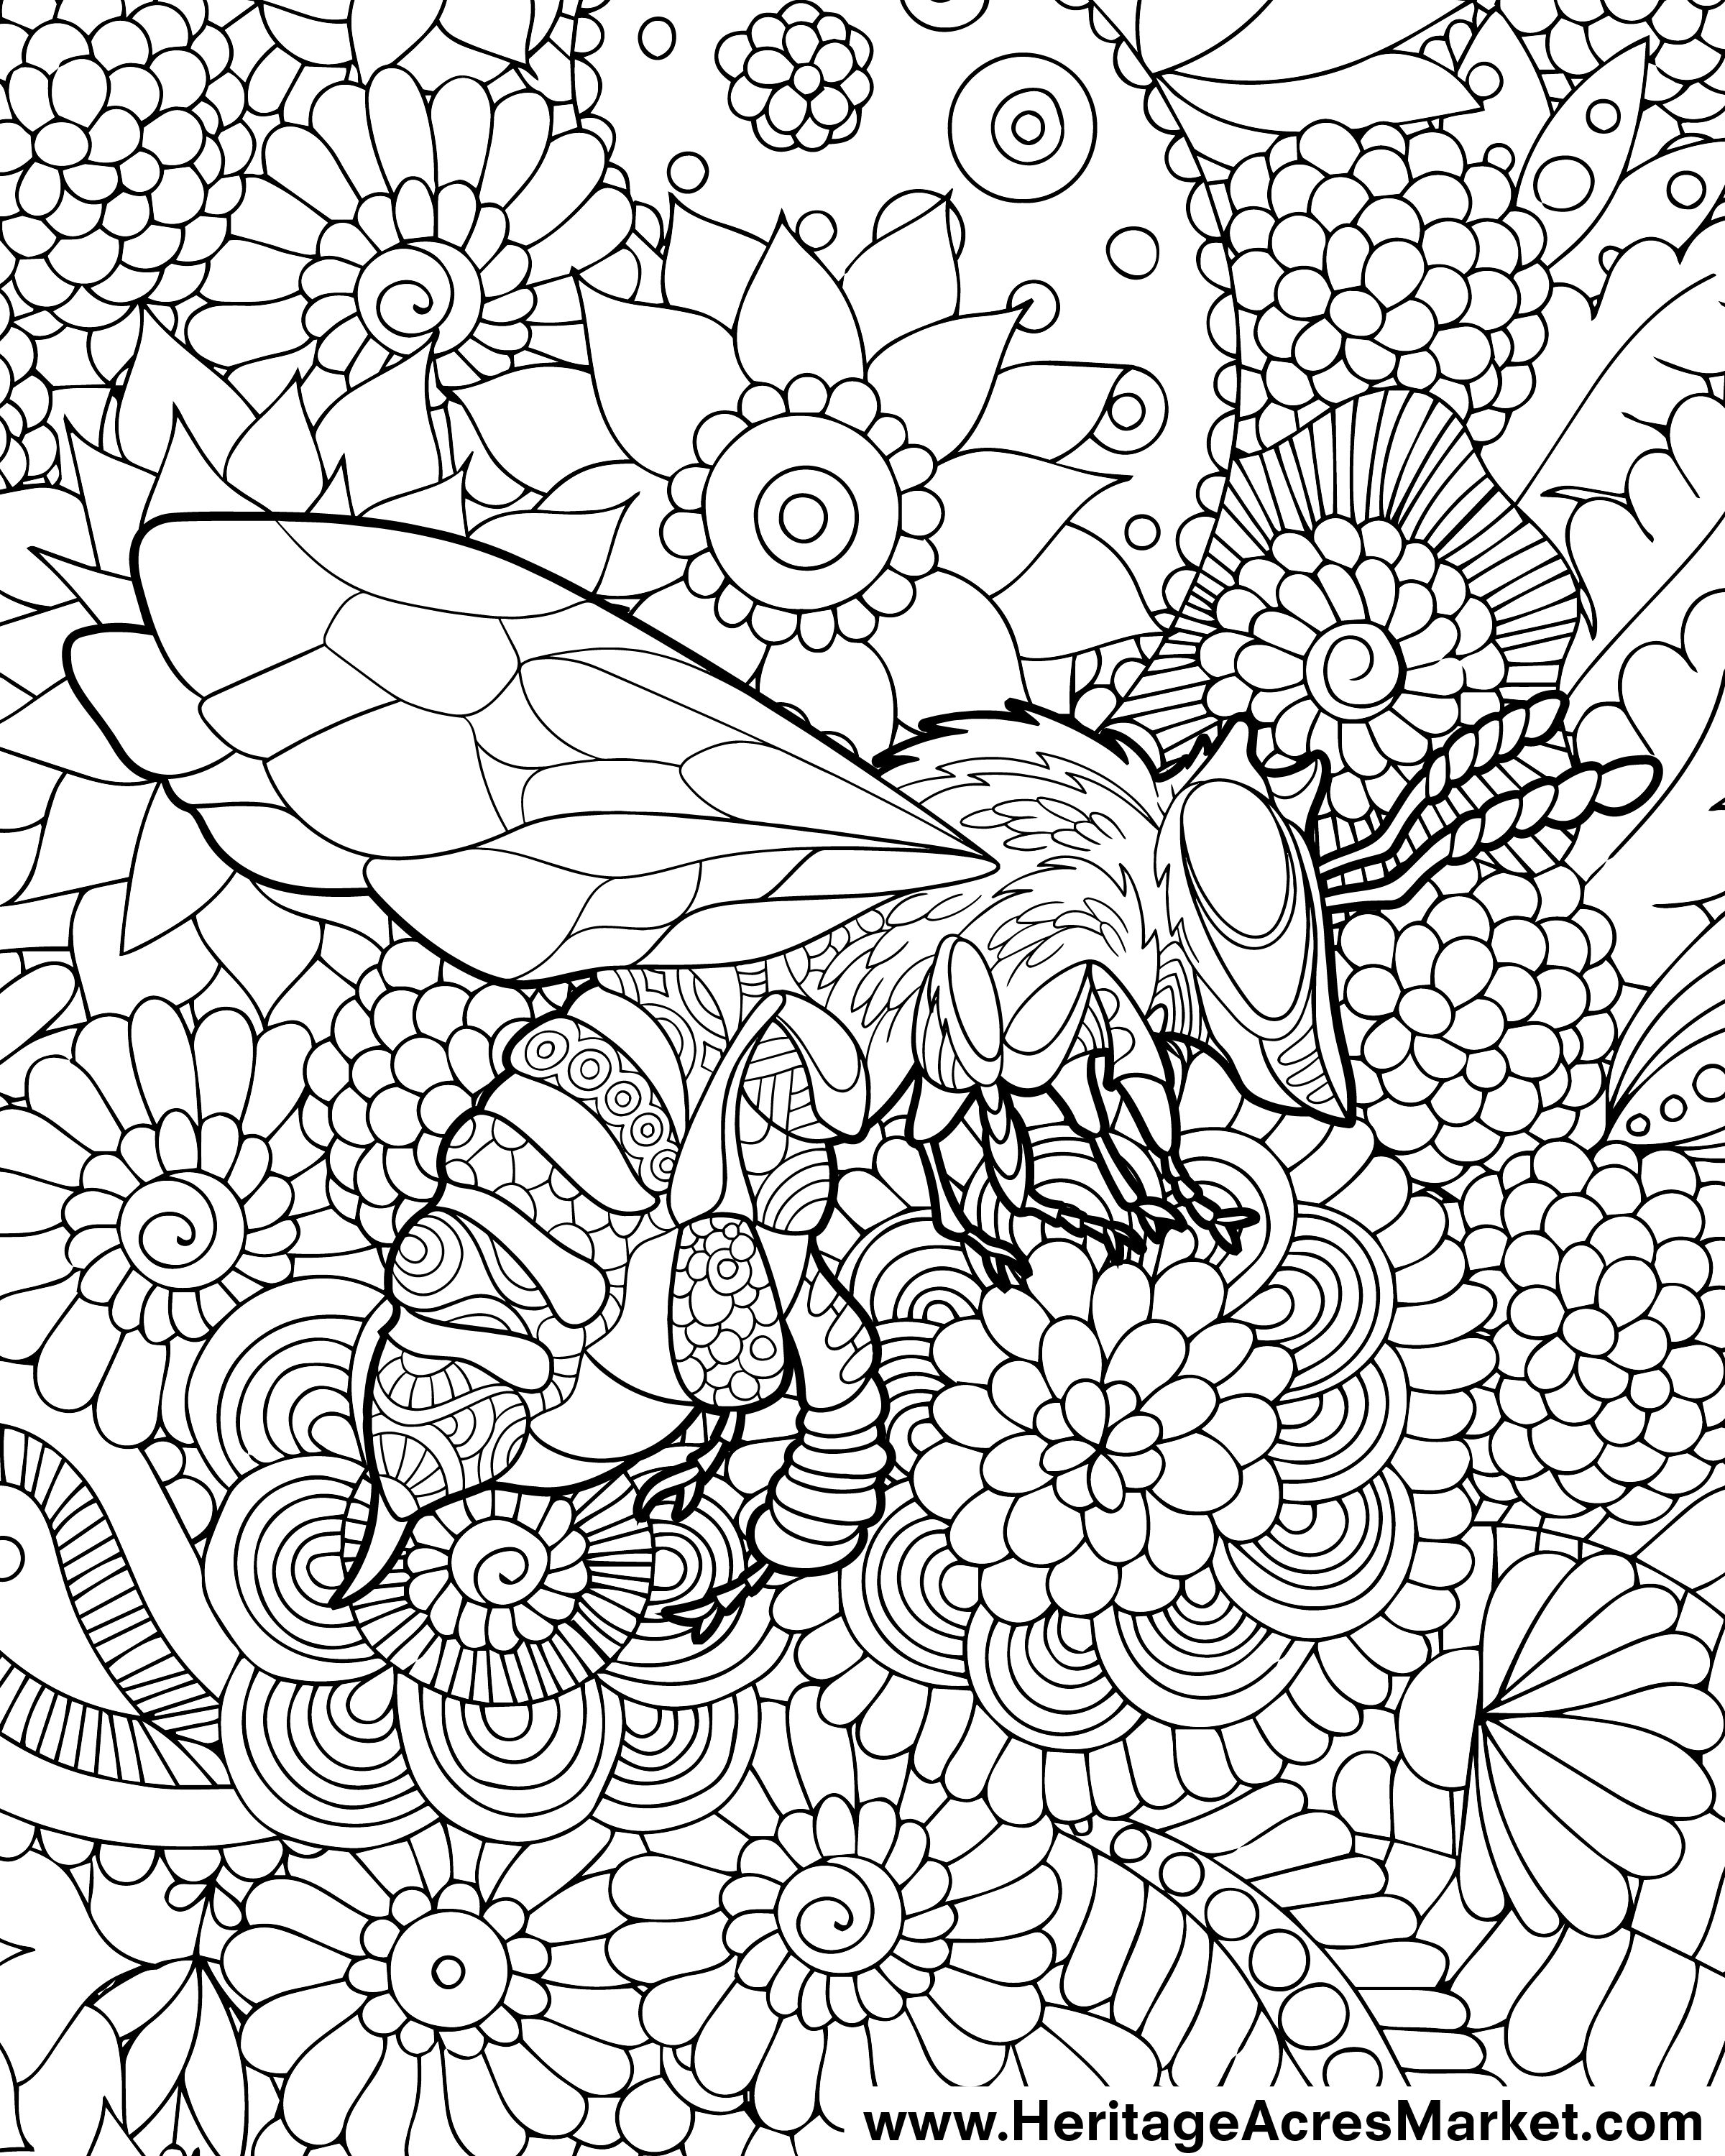 High quality printable coloring pages - Free Bee Coloring Pages And More New High Quality Free Printable Coloring Page